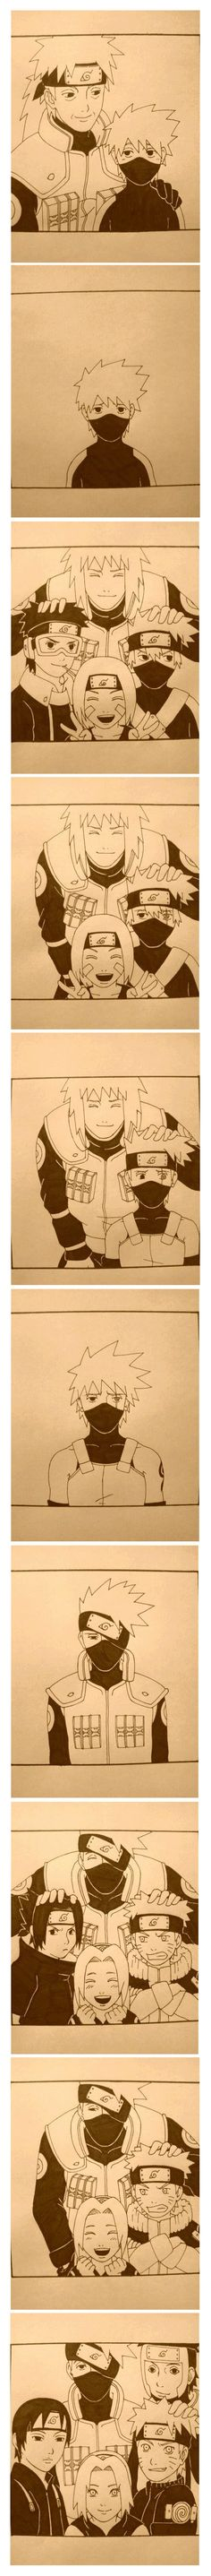 Kakashi Story, I feel so sad for him :( :( :( We are here for you Kakashi <3 <3 T^T | Sakumo, young Kakashi, Team Minato, ANBU, jounin, Team 7, Team Kakashi